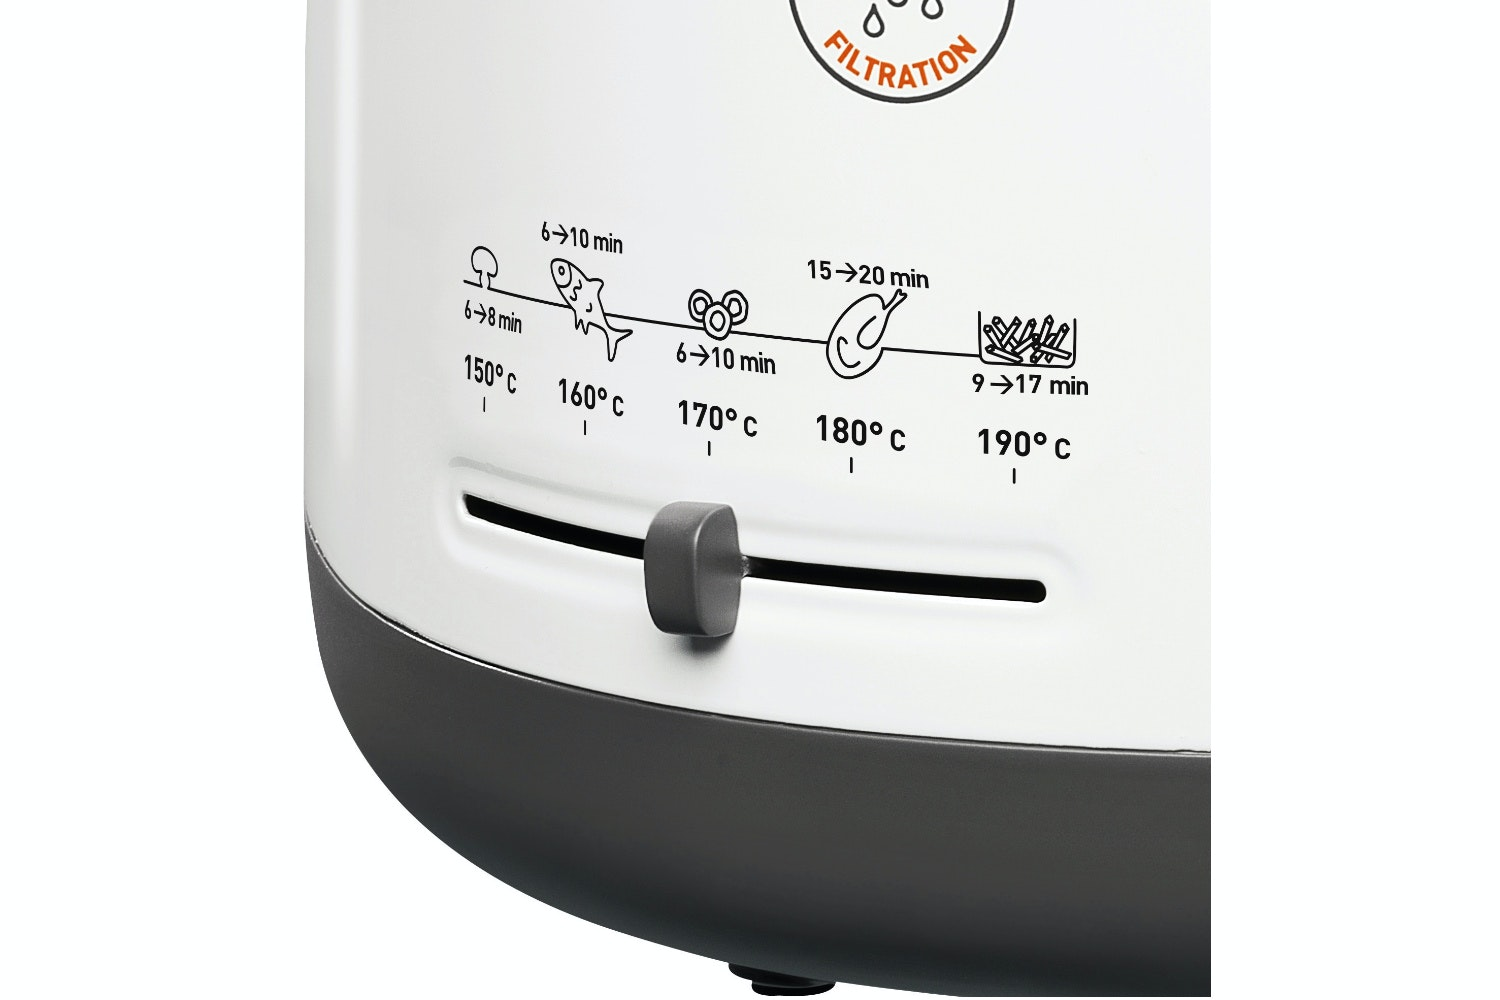 Tefal Filtra One FF162140 Variable control